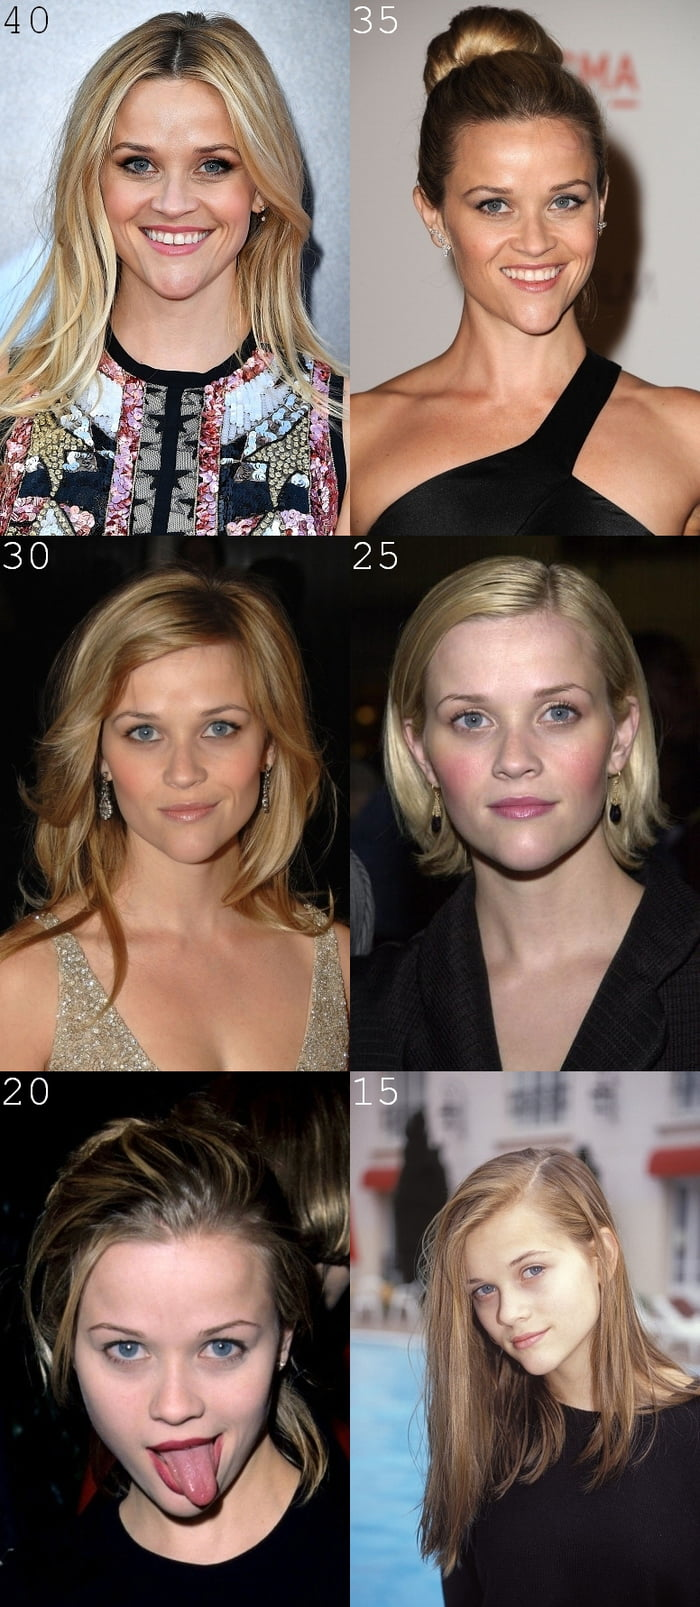 Reese Witherspoon, 45 years old today